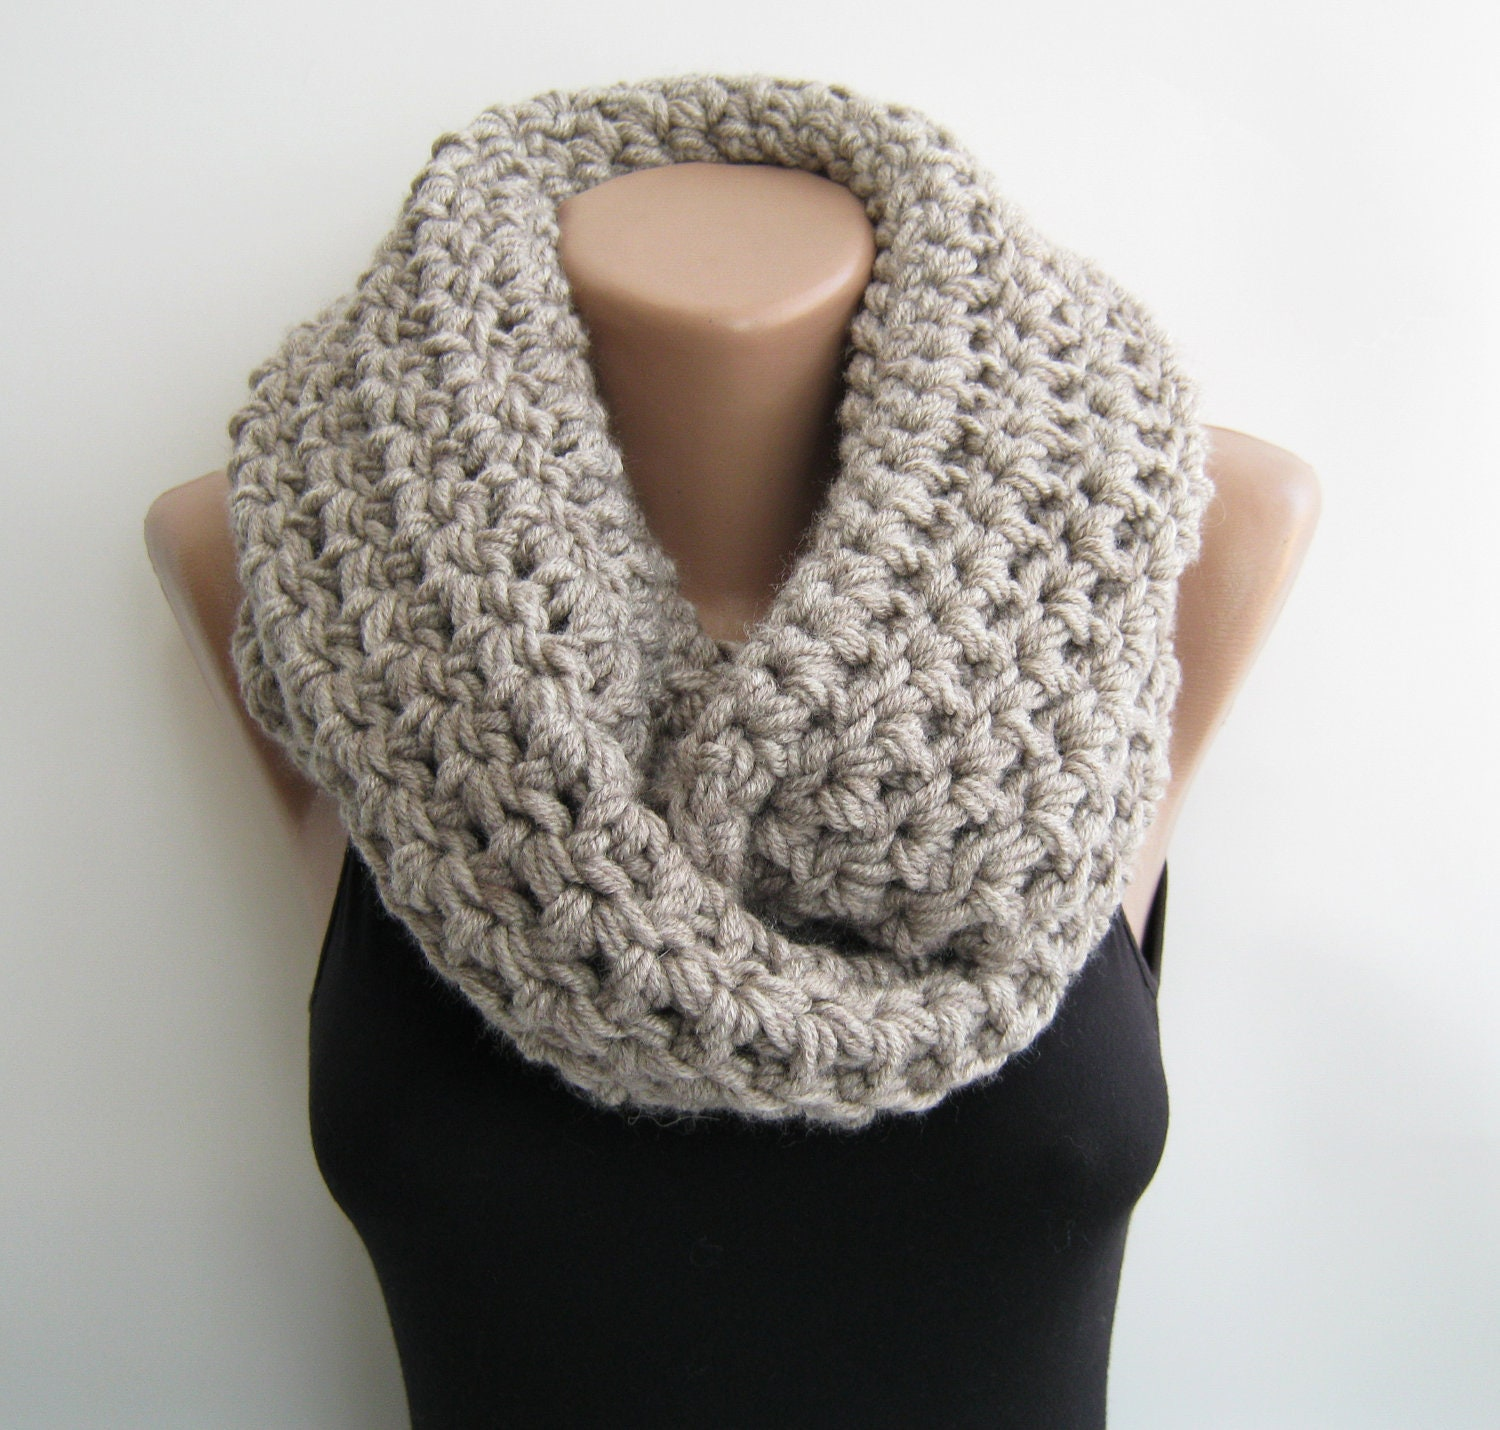 Free Knitting Pattern Chunky Cable Scarf : Chunky Scarf Crochet Present Snuggly Crochet Scarf by sascarves